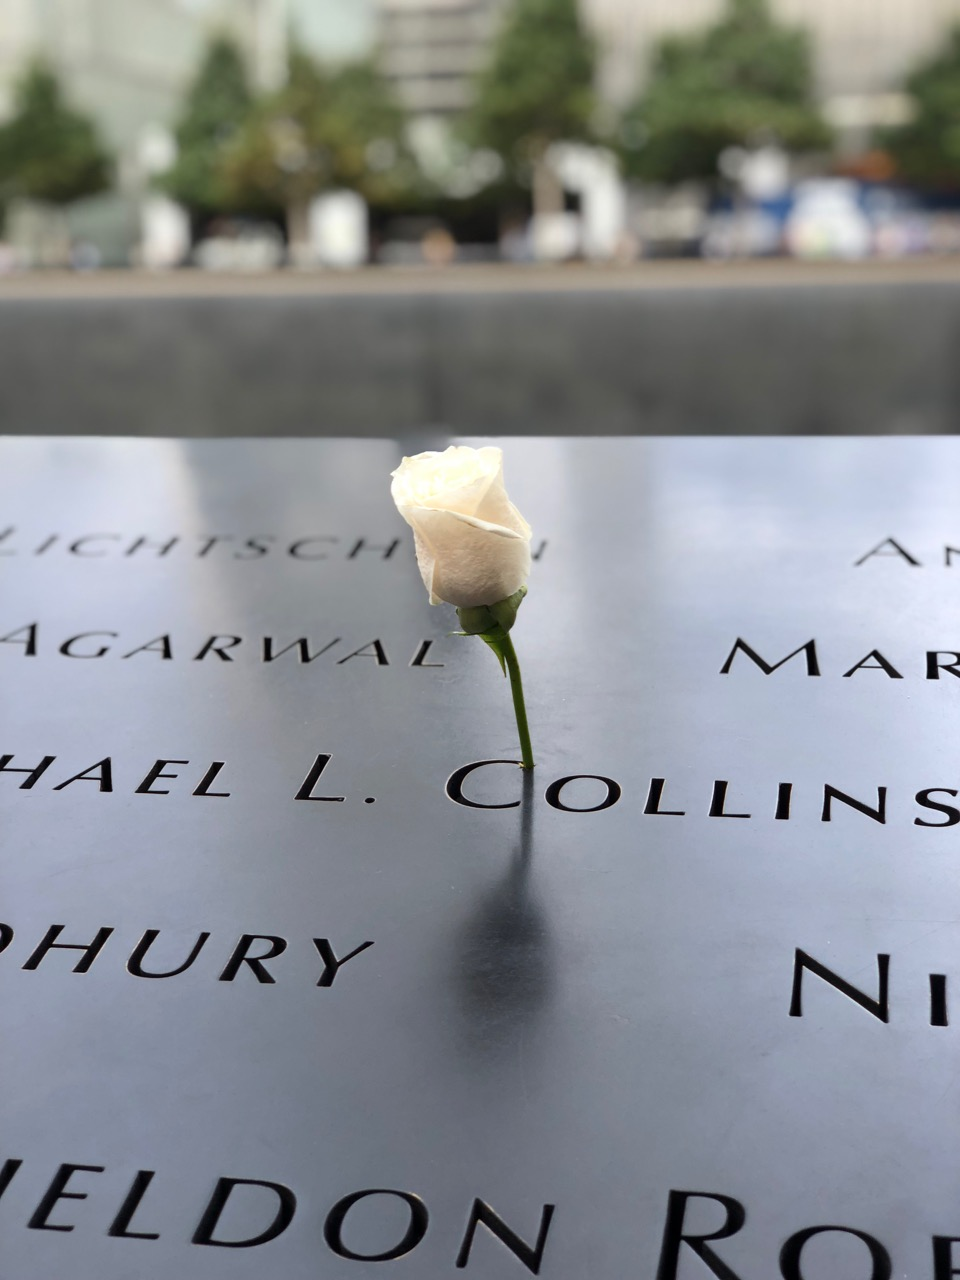 9/11 Memorial - White roses are placed near the names on the victim's birthday.